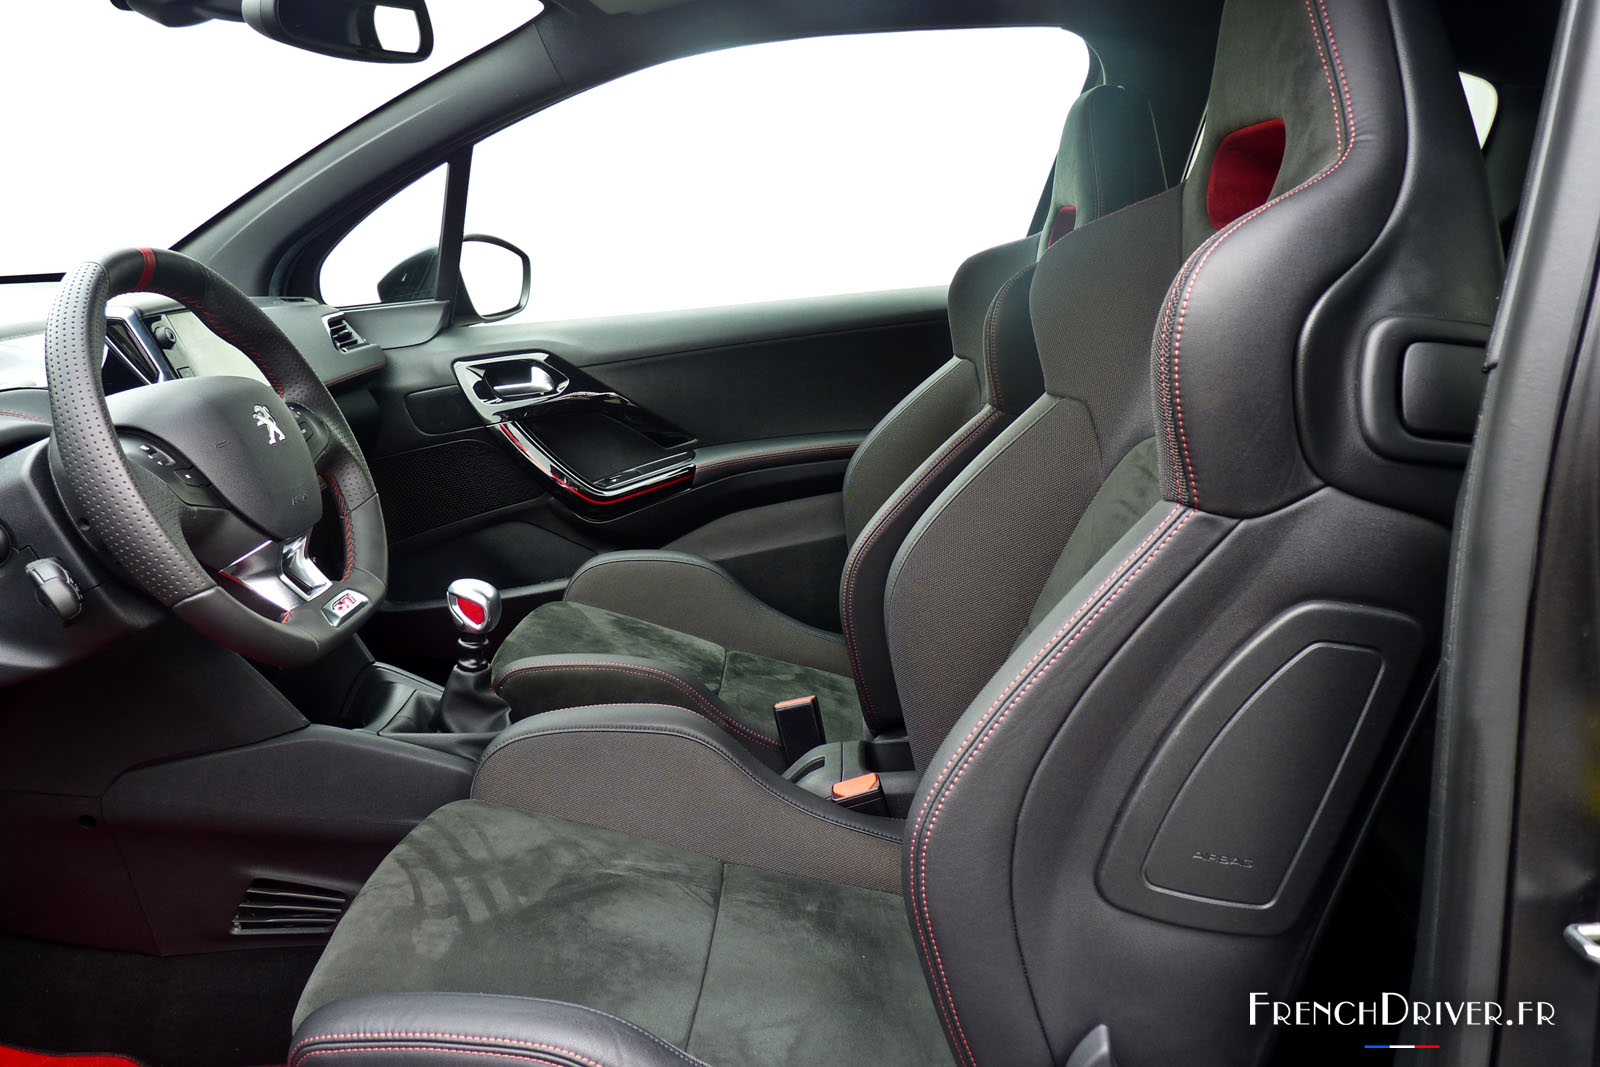 Essai de la peugeot 208 gti 30th l 39 exemple suivre for Interieur peugeot 208